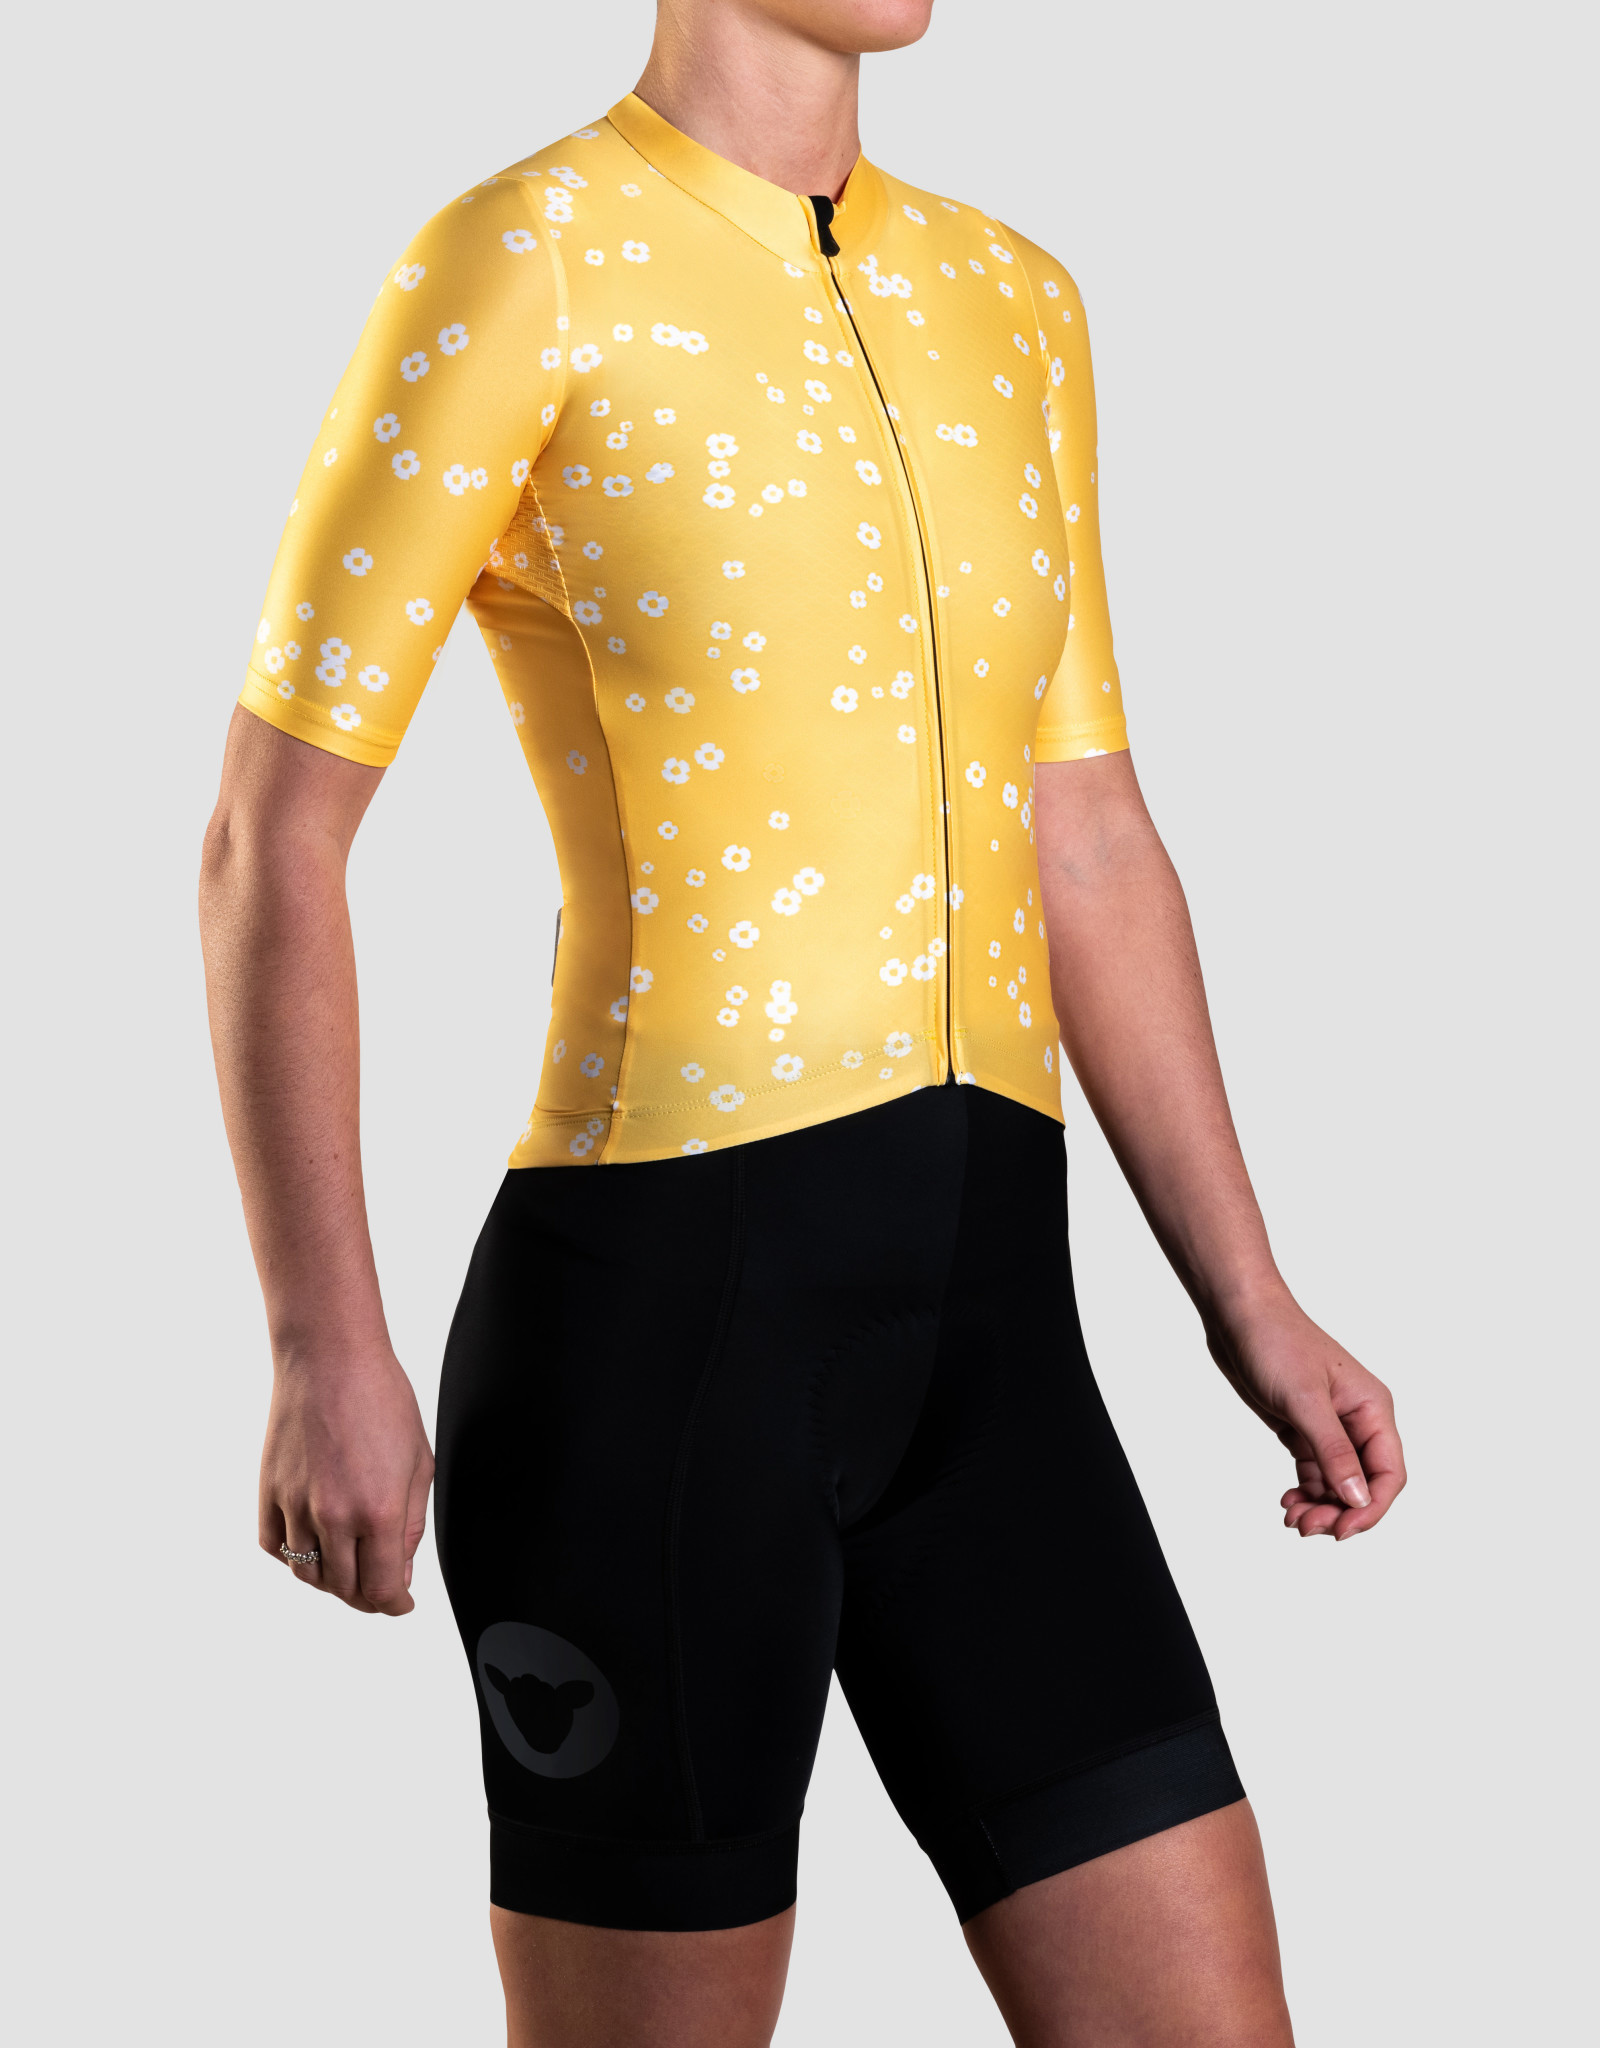 Black Sheep Cycling Women's TEAM jersey - Daisy Yellow